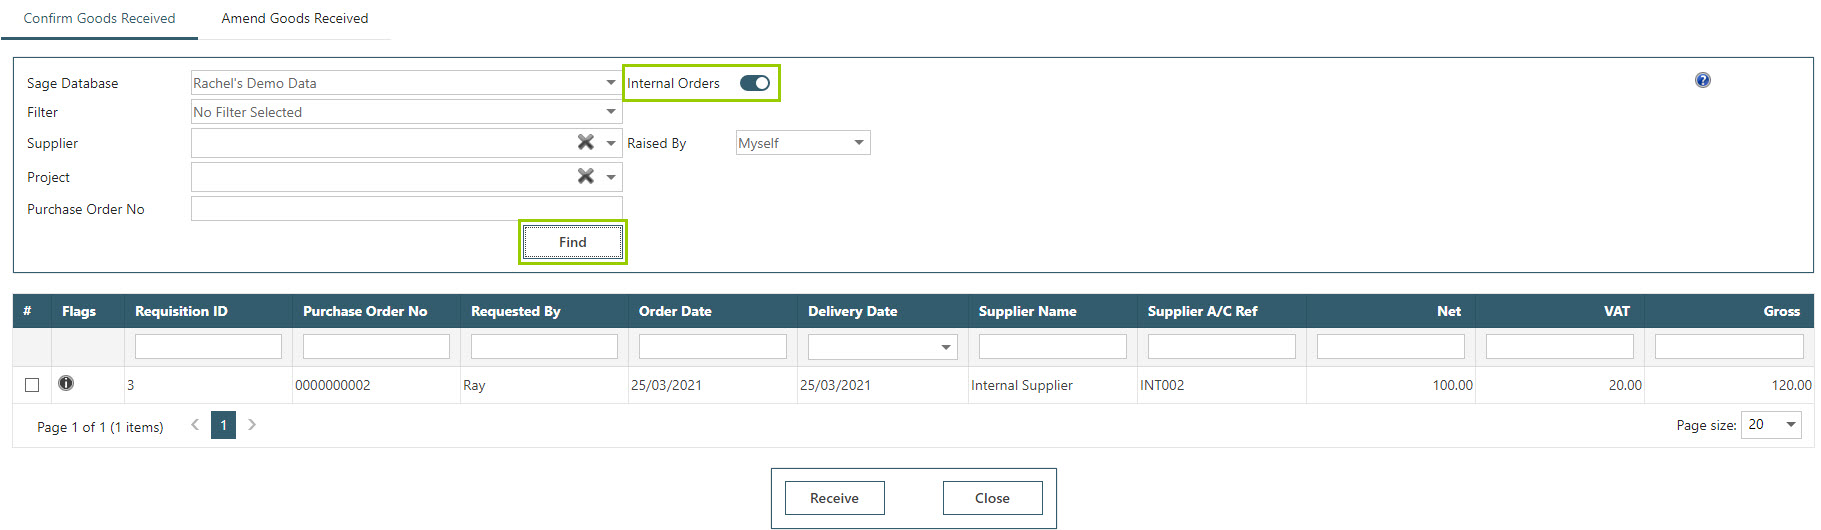 Sicon WAP Purchase Requisitions Help and User Guide - Requisition HUG Section 14.6 Image 1